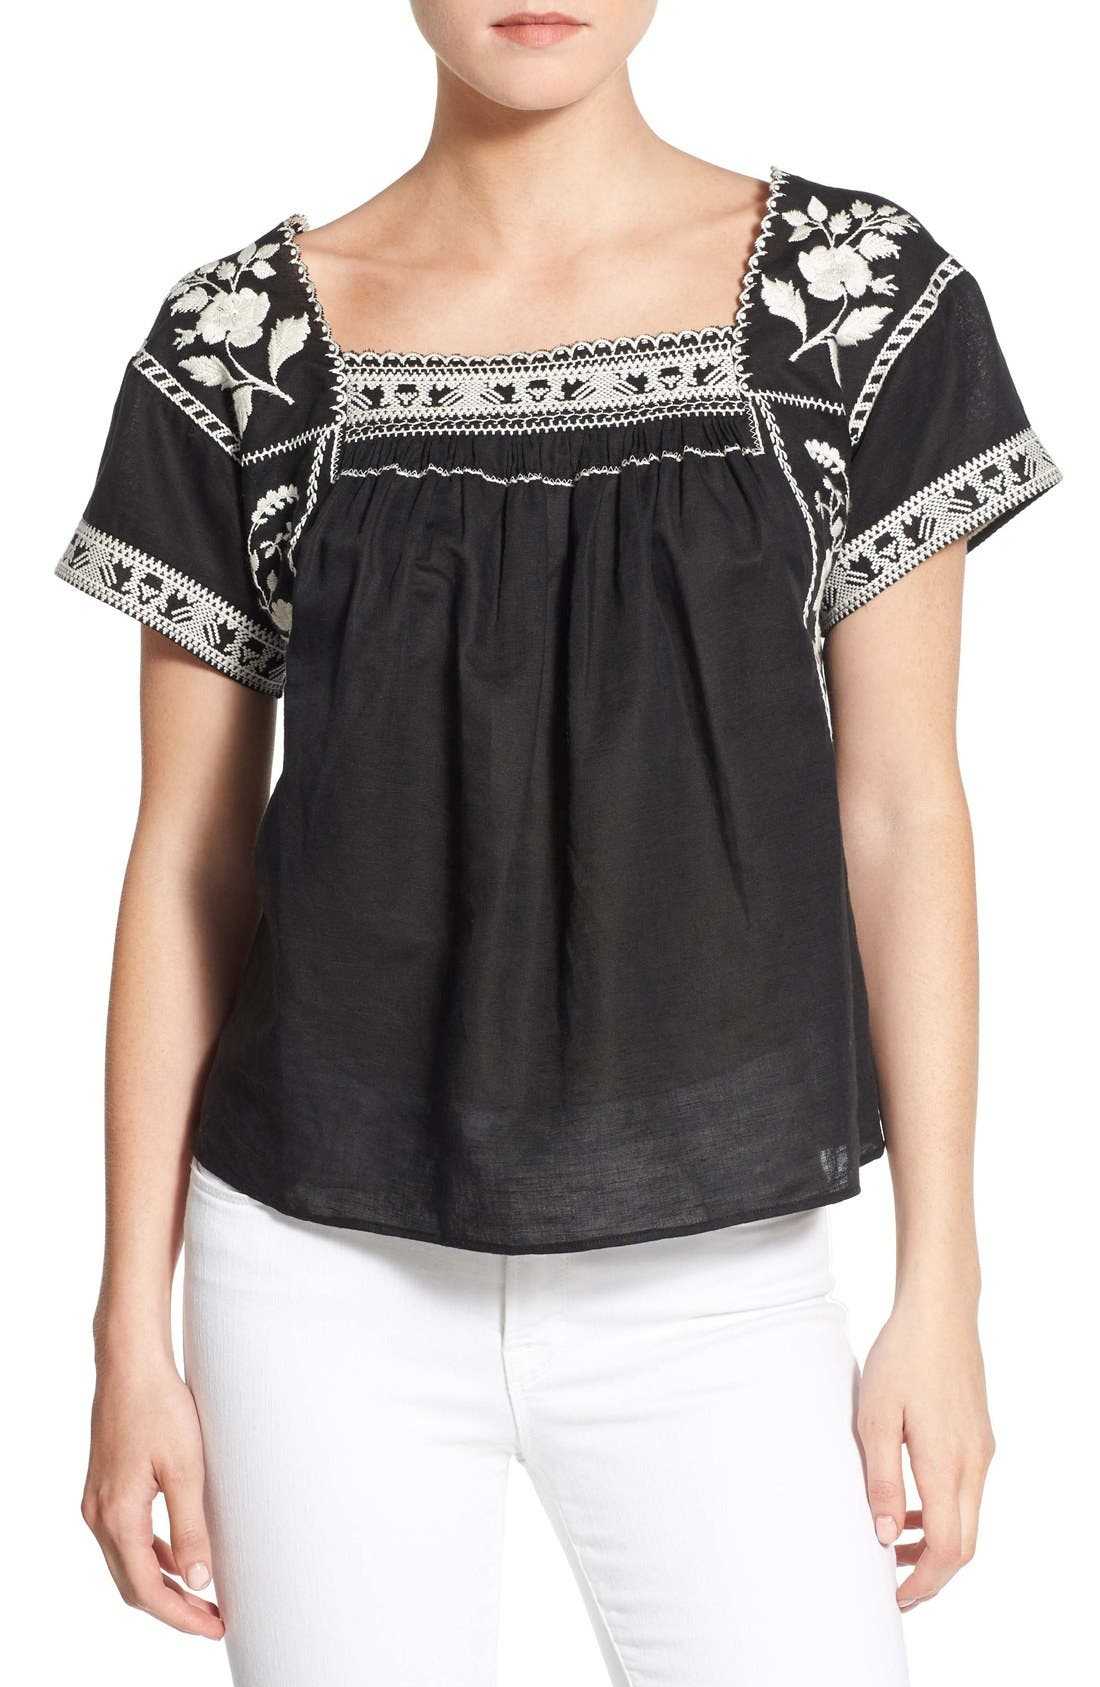 Wildfield Embroidered Top,                             Main thumbnail 1, color,                             001